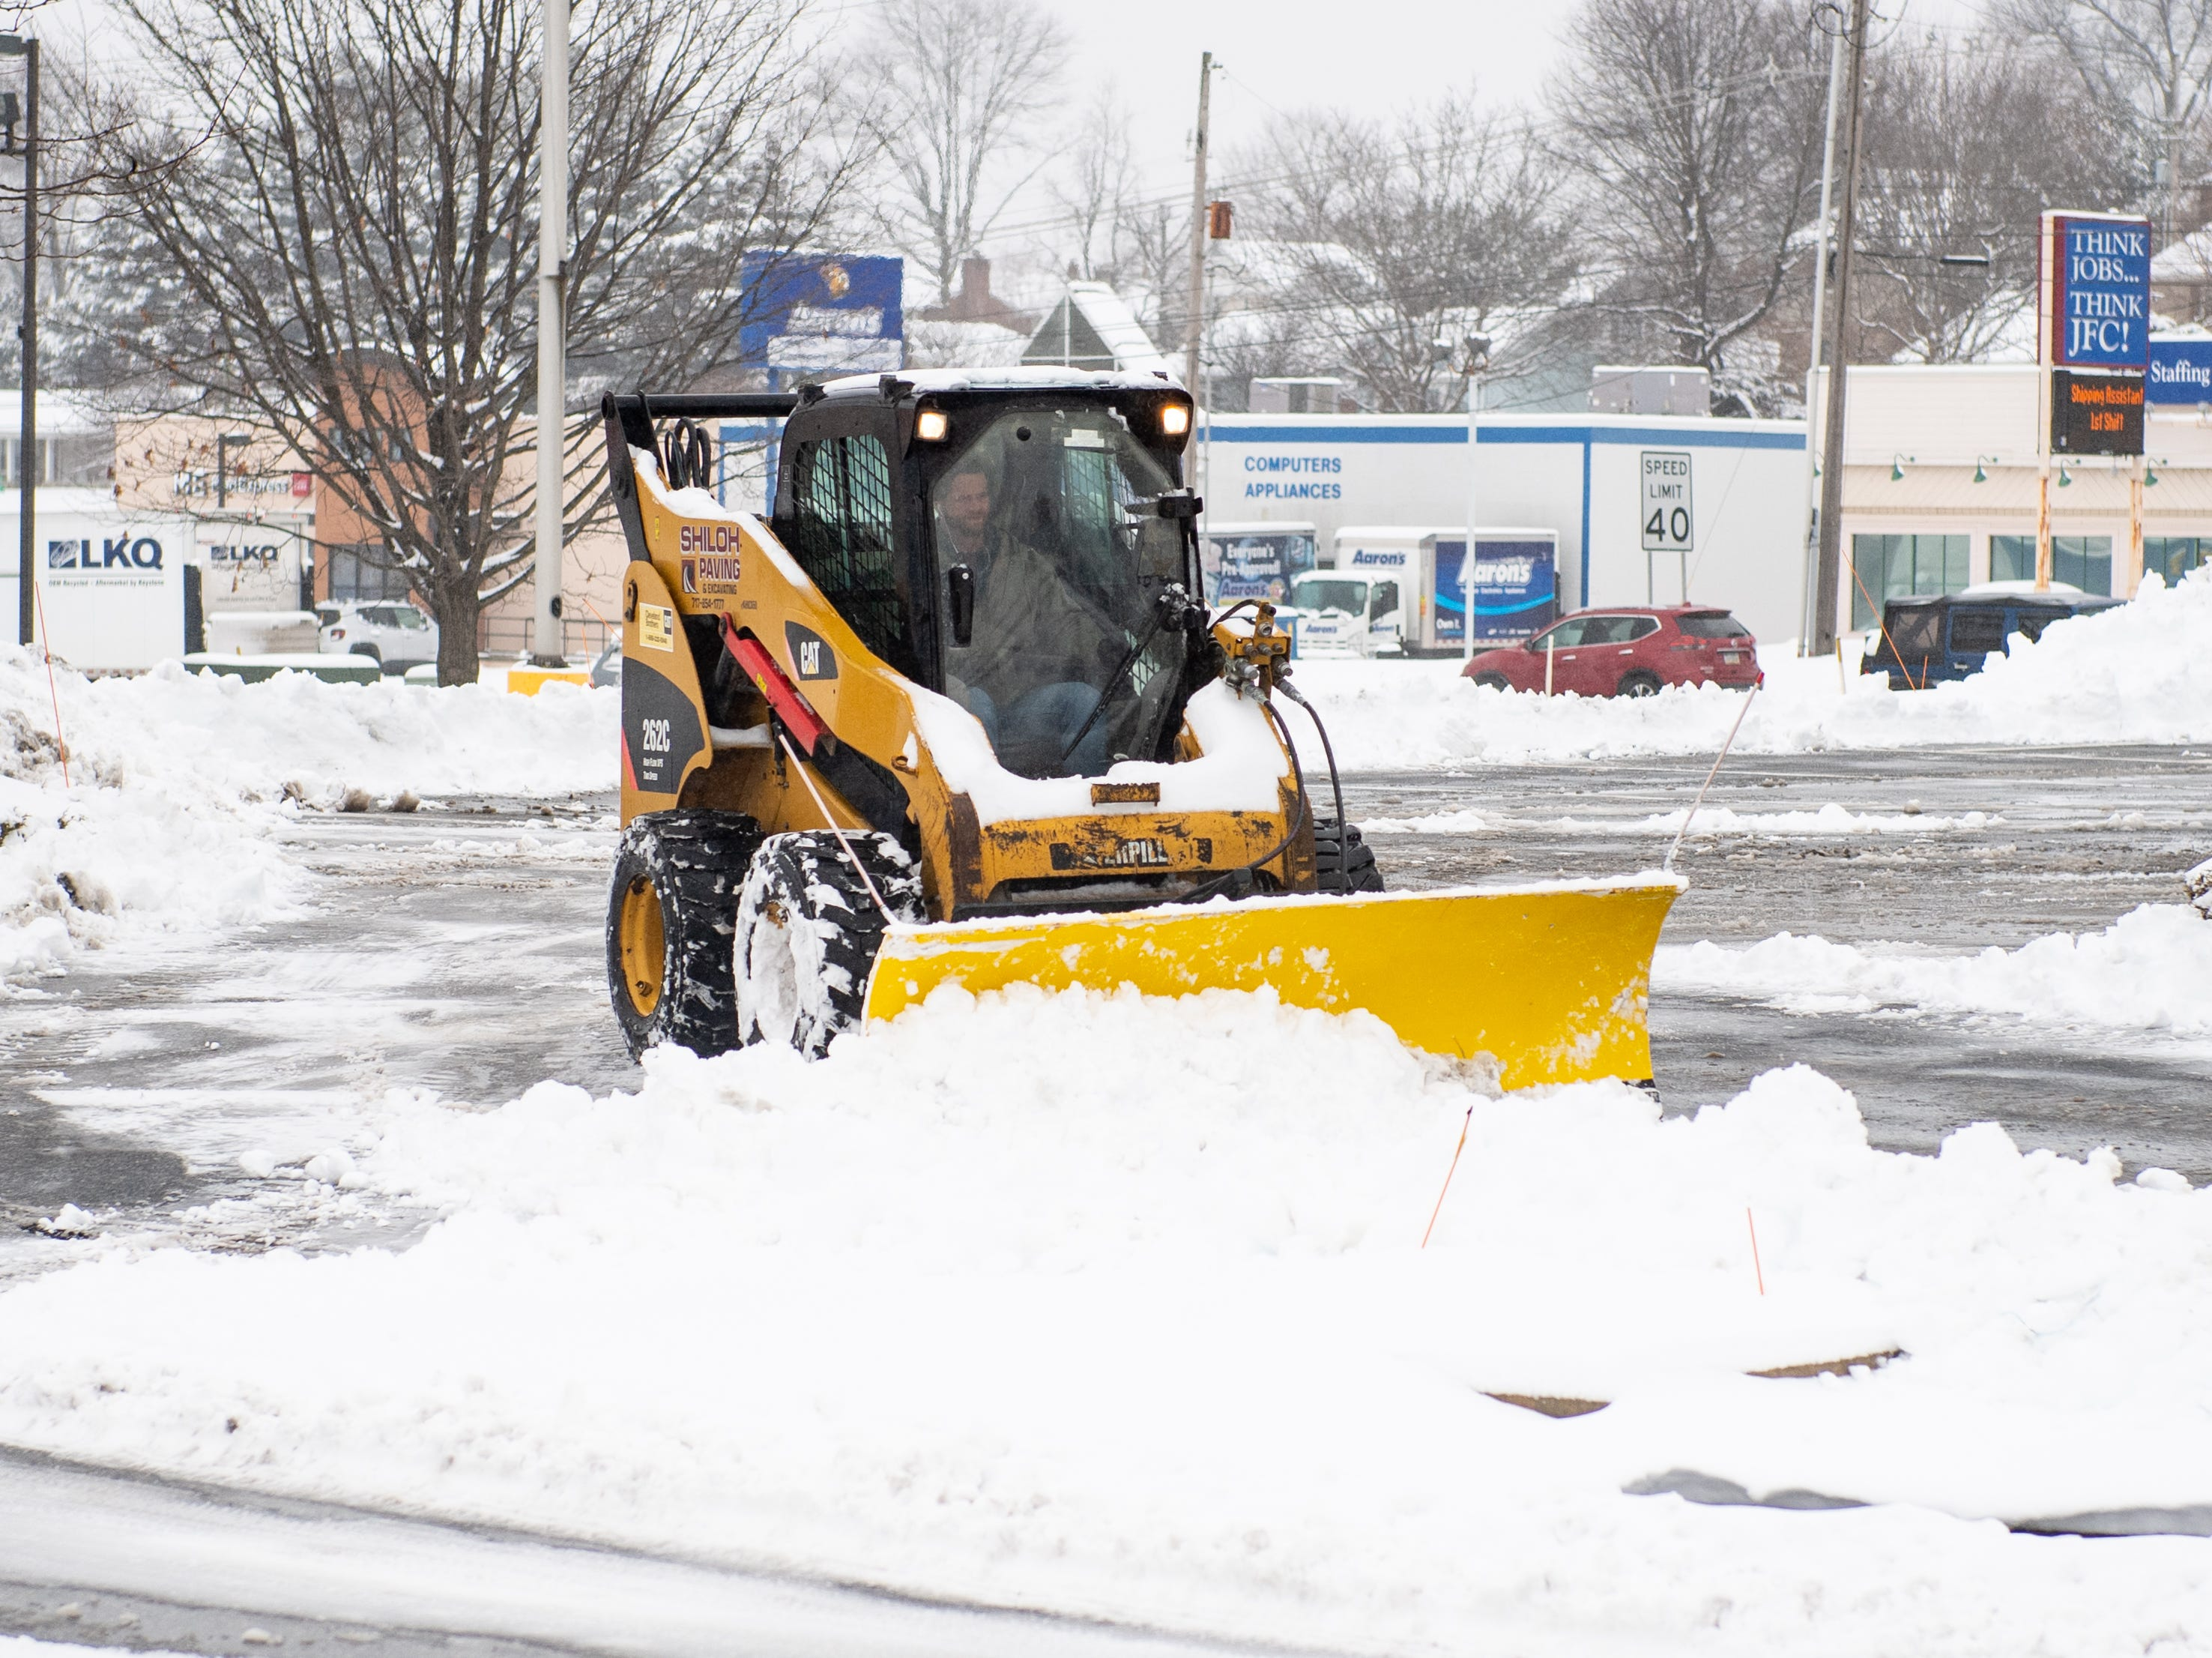 Small bulldozers work to clear parking lots in West Manchester Township as the snow turns to rain, February 20, 2019.